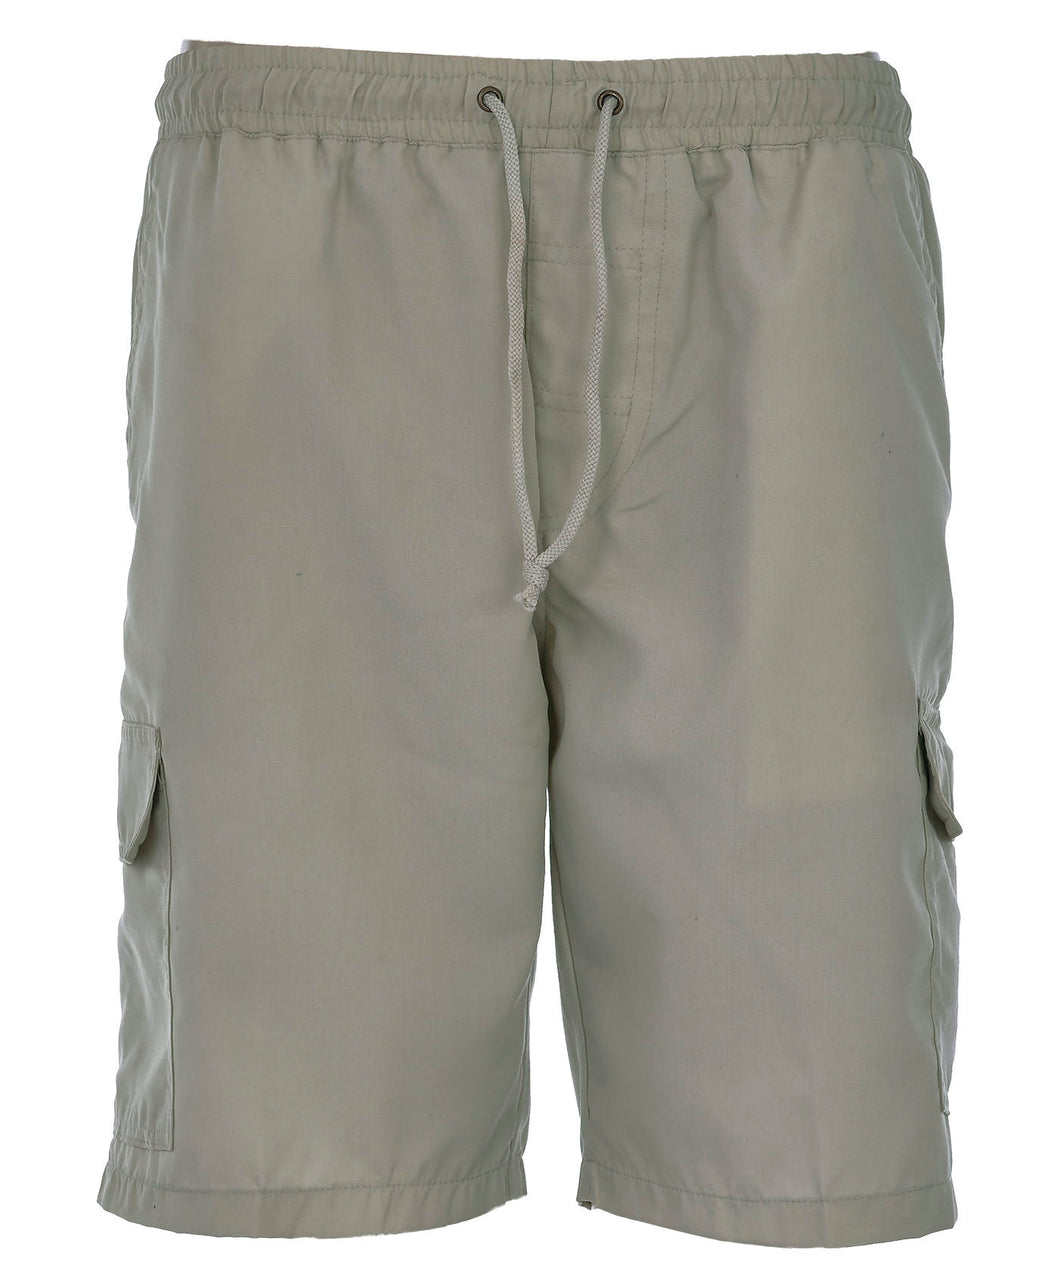 Mens Cargo Combat Shorts (Stone Color)